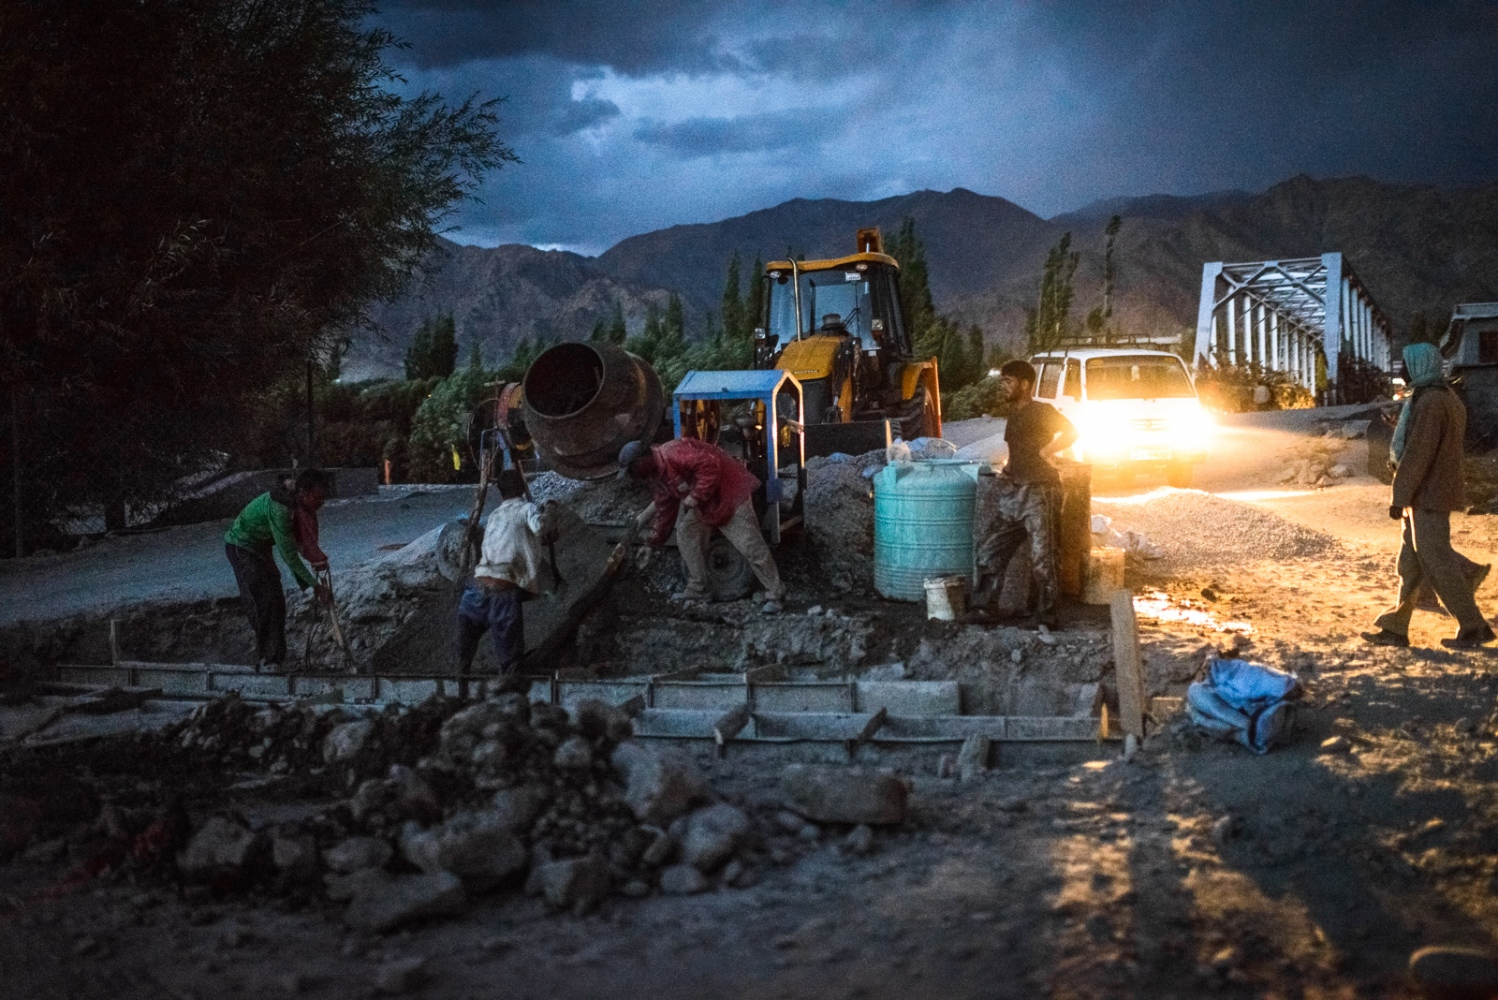 Workers near Choglomsar, Ladakh work into the twilight to finish building underground irrigation canals after the 2010 'cloudburst' event had destroyed most rural water infrastructure in the vicinity.